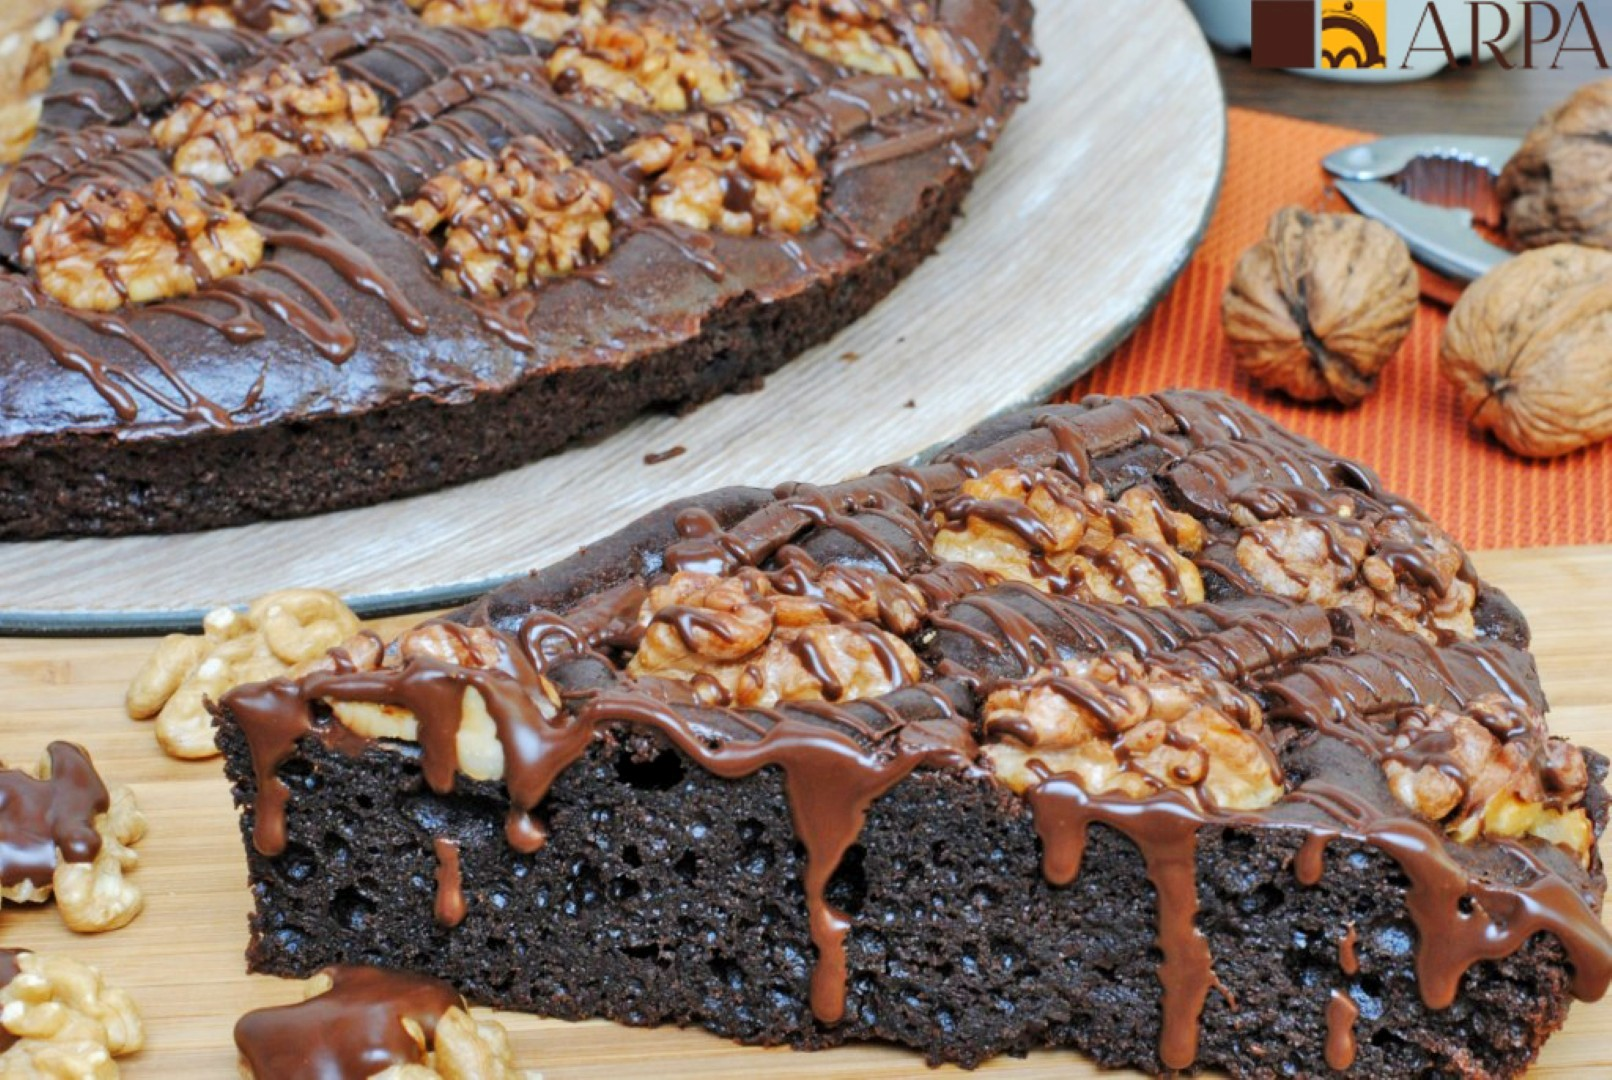 Tarta de brownie chocolate con nueces